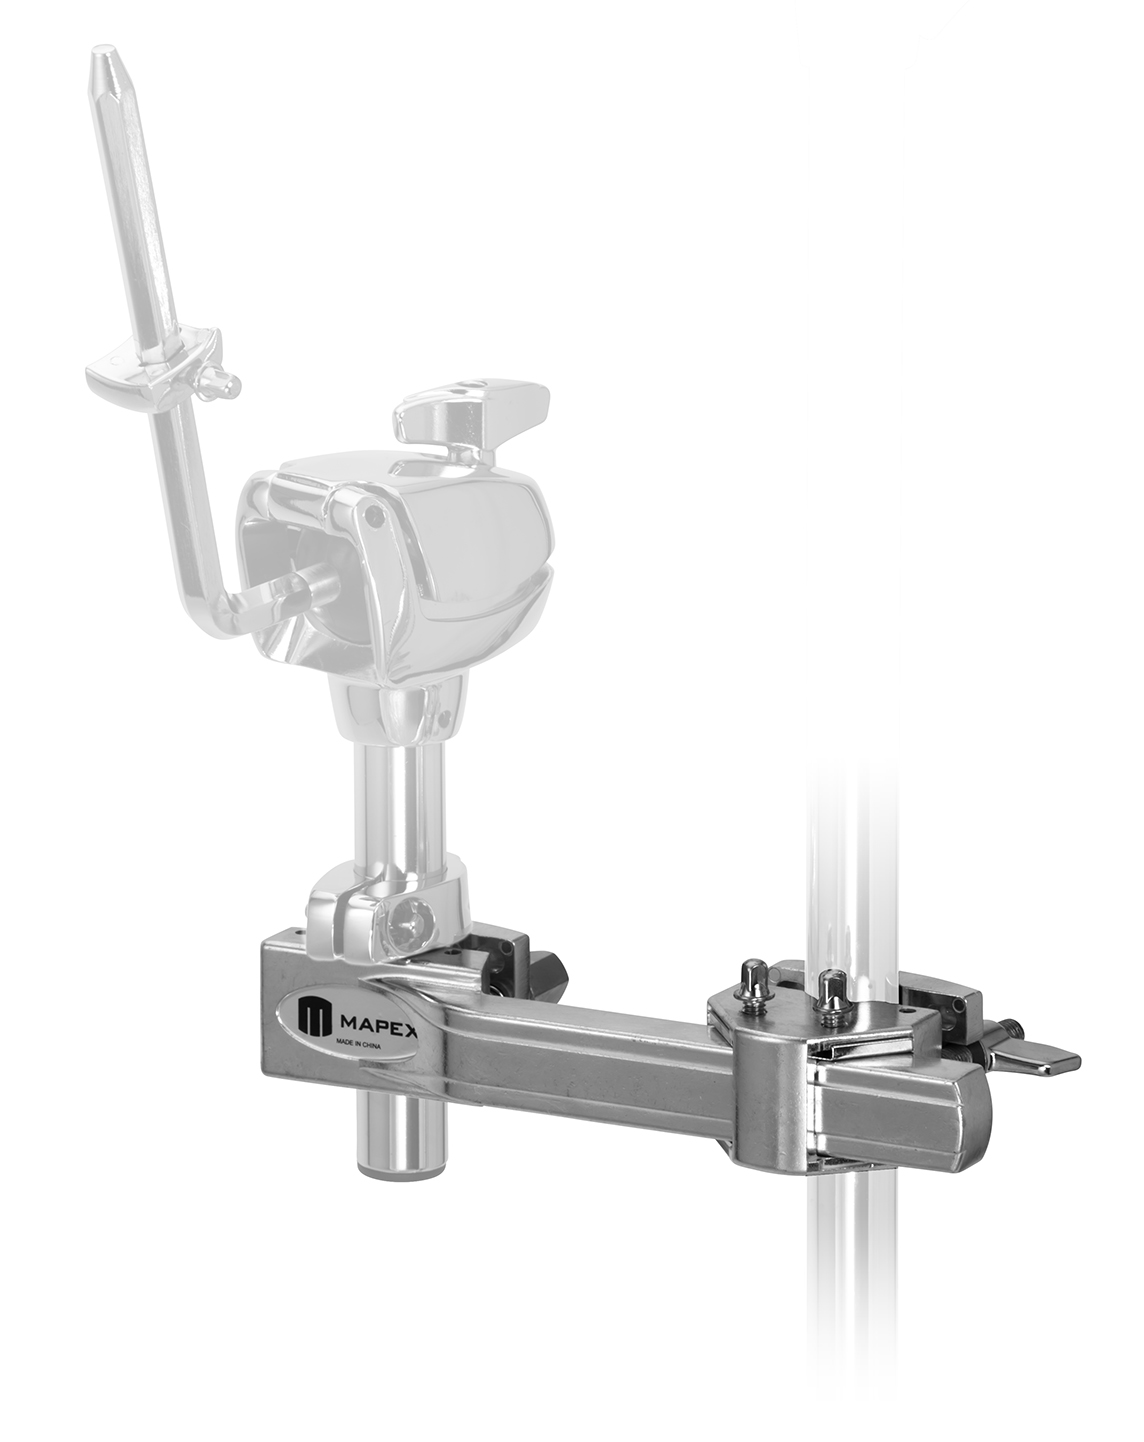 2 Way Multi Clamp Black: Instrument Stand